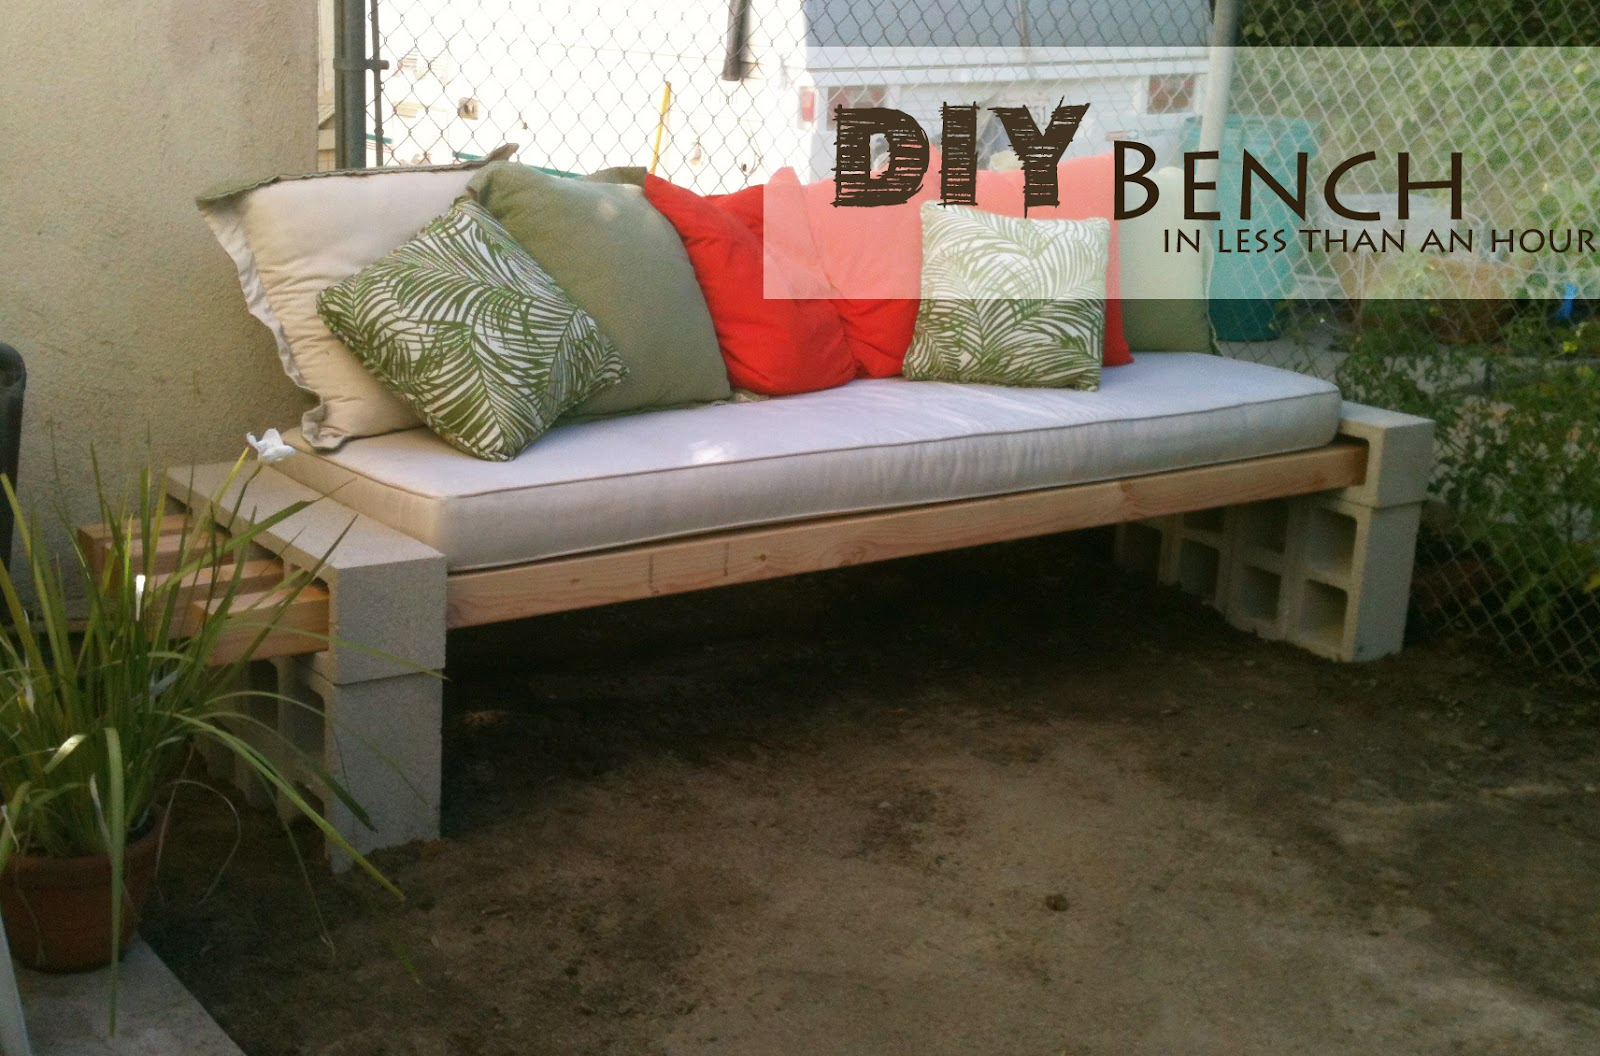 diy garden bench in less than an hour